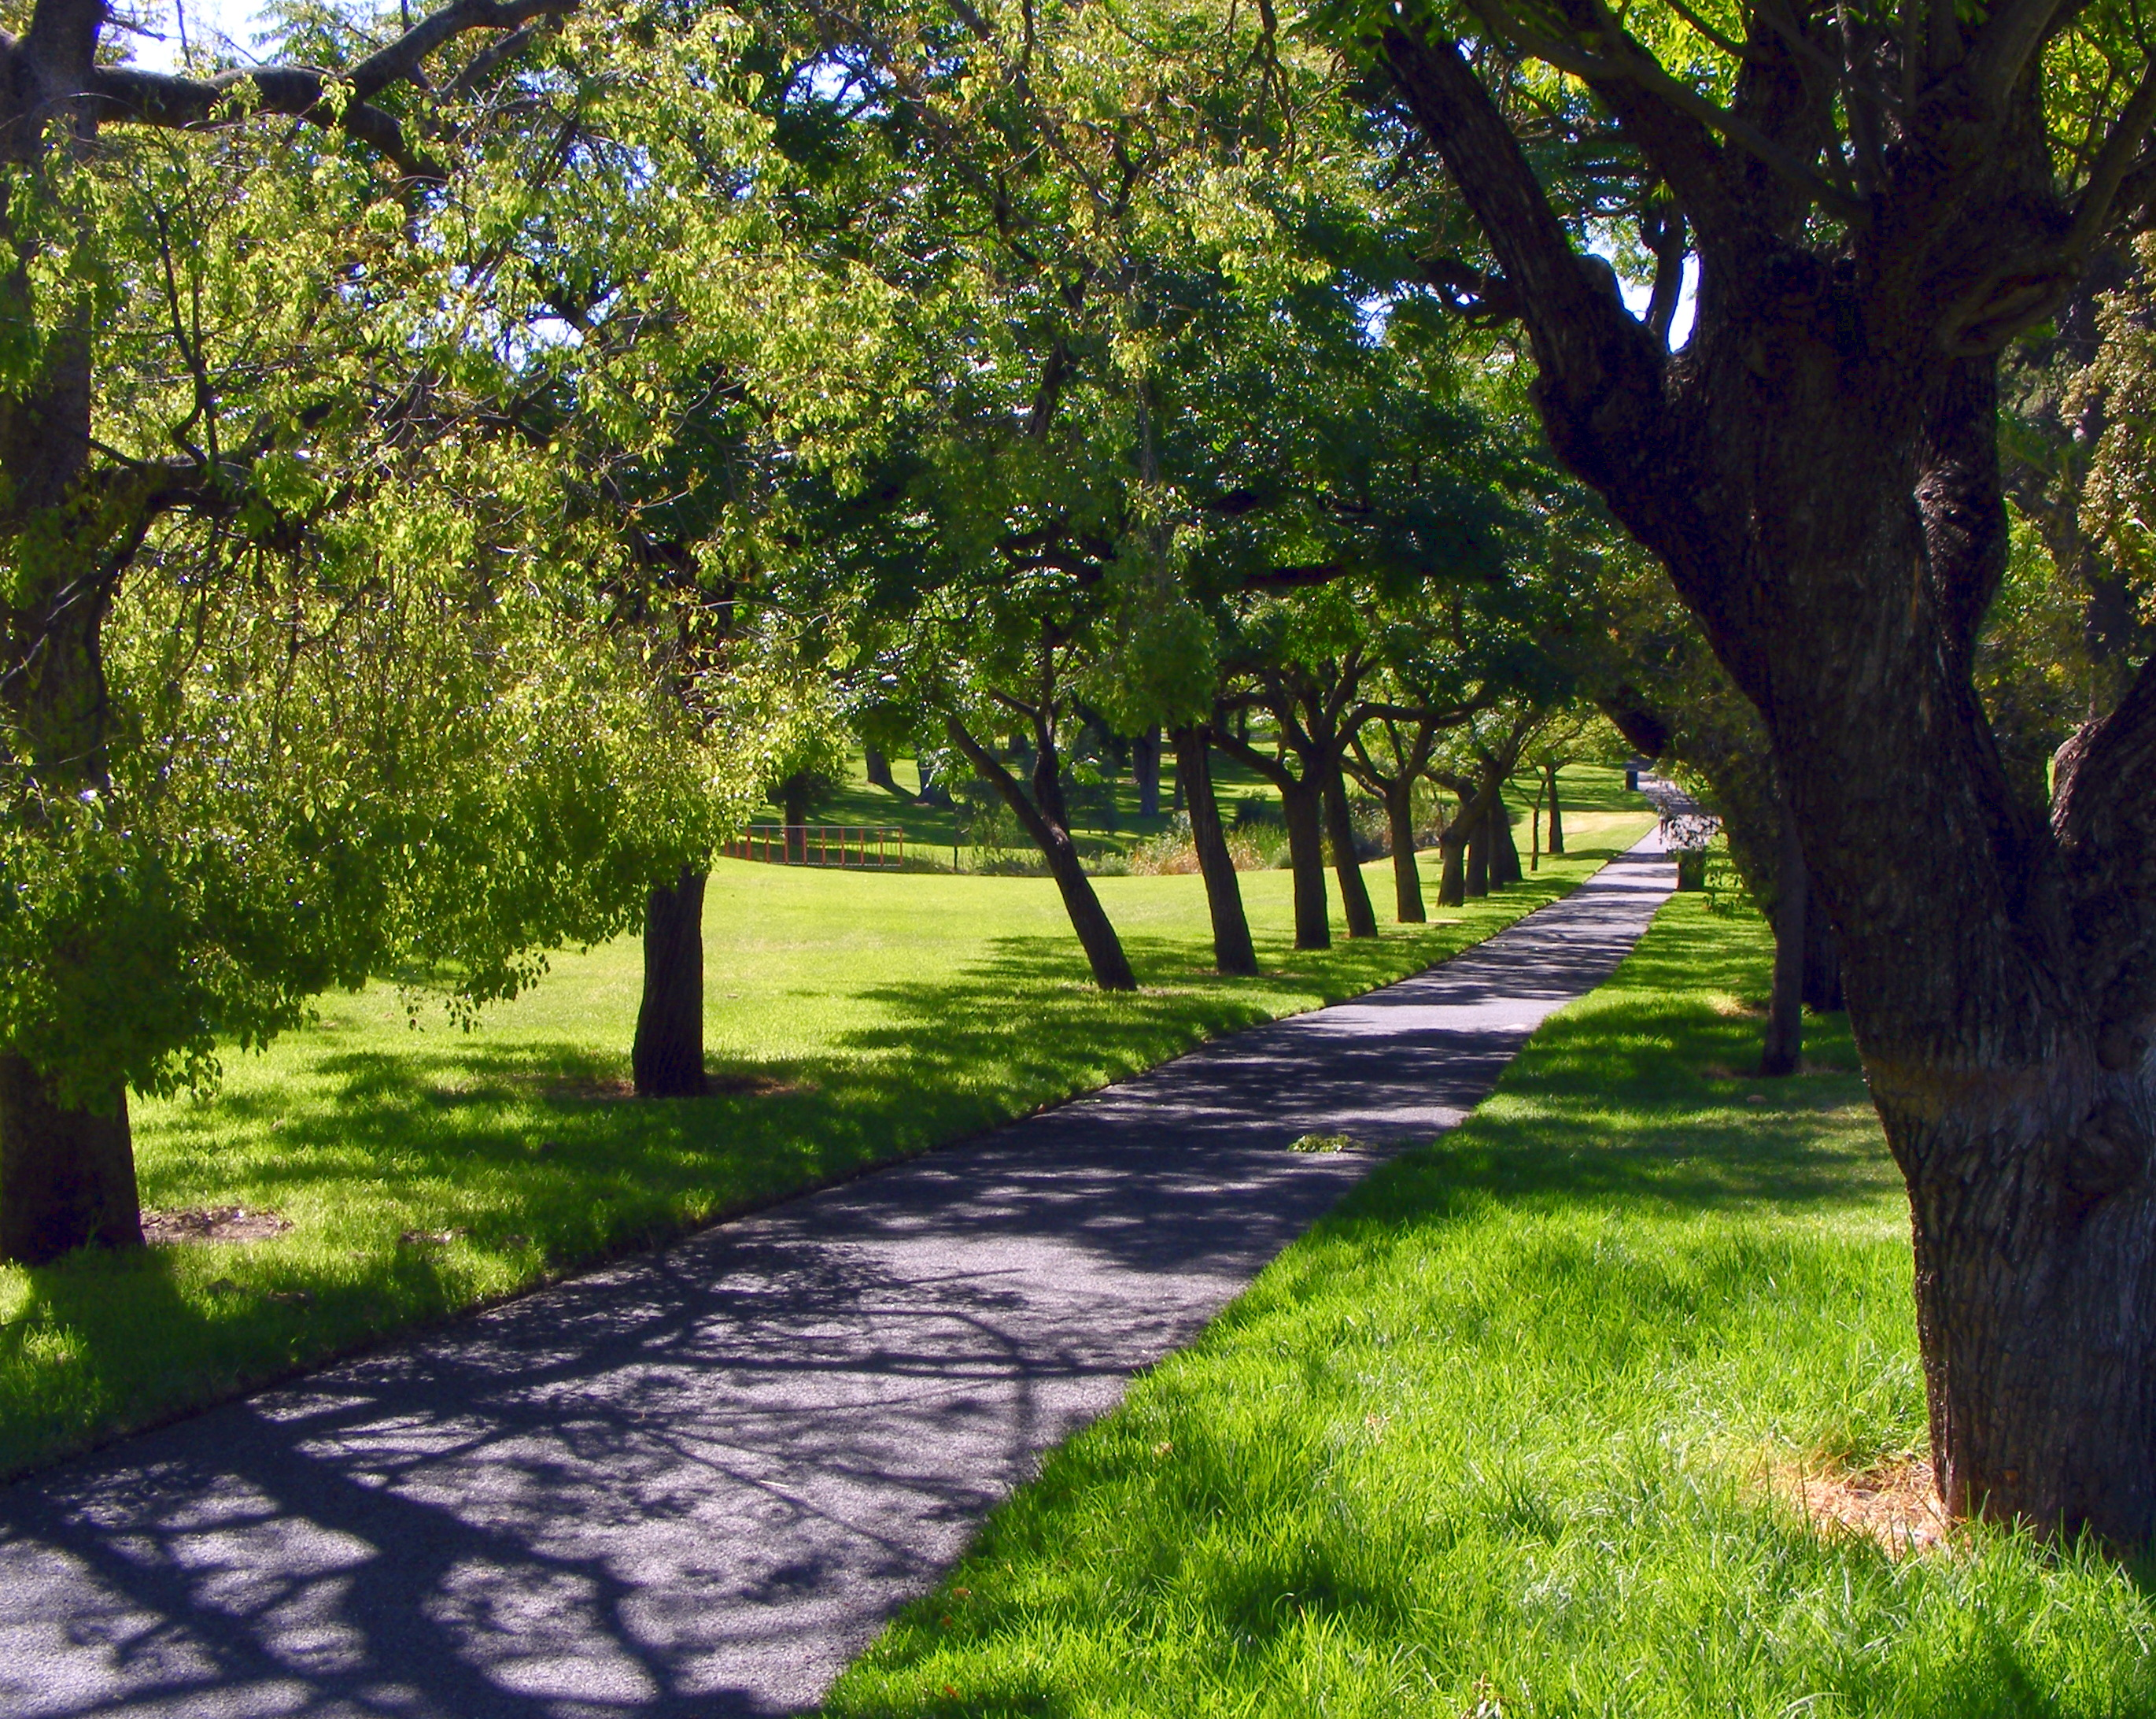 File:Rymill park path.jpg - Wikimedia Commons